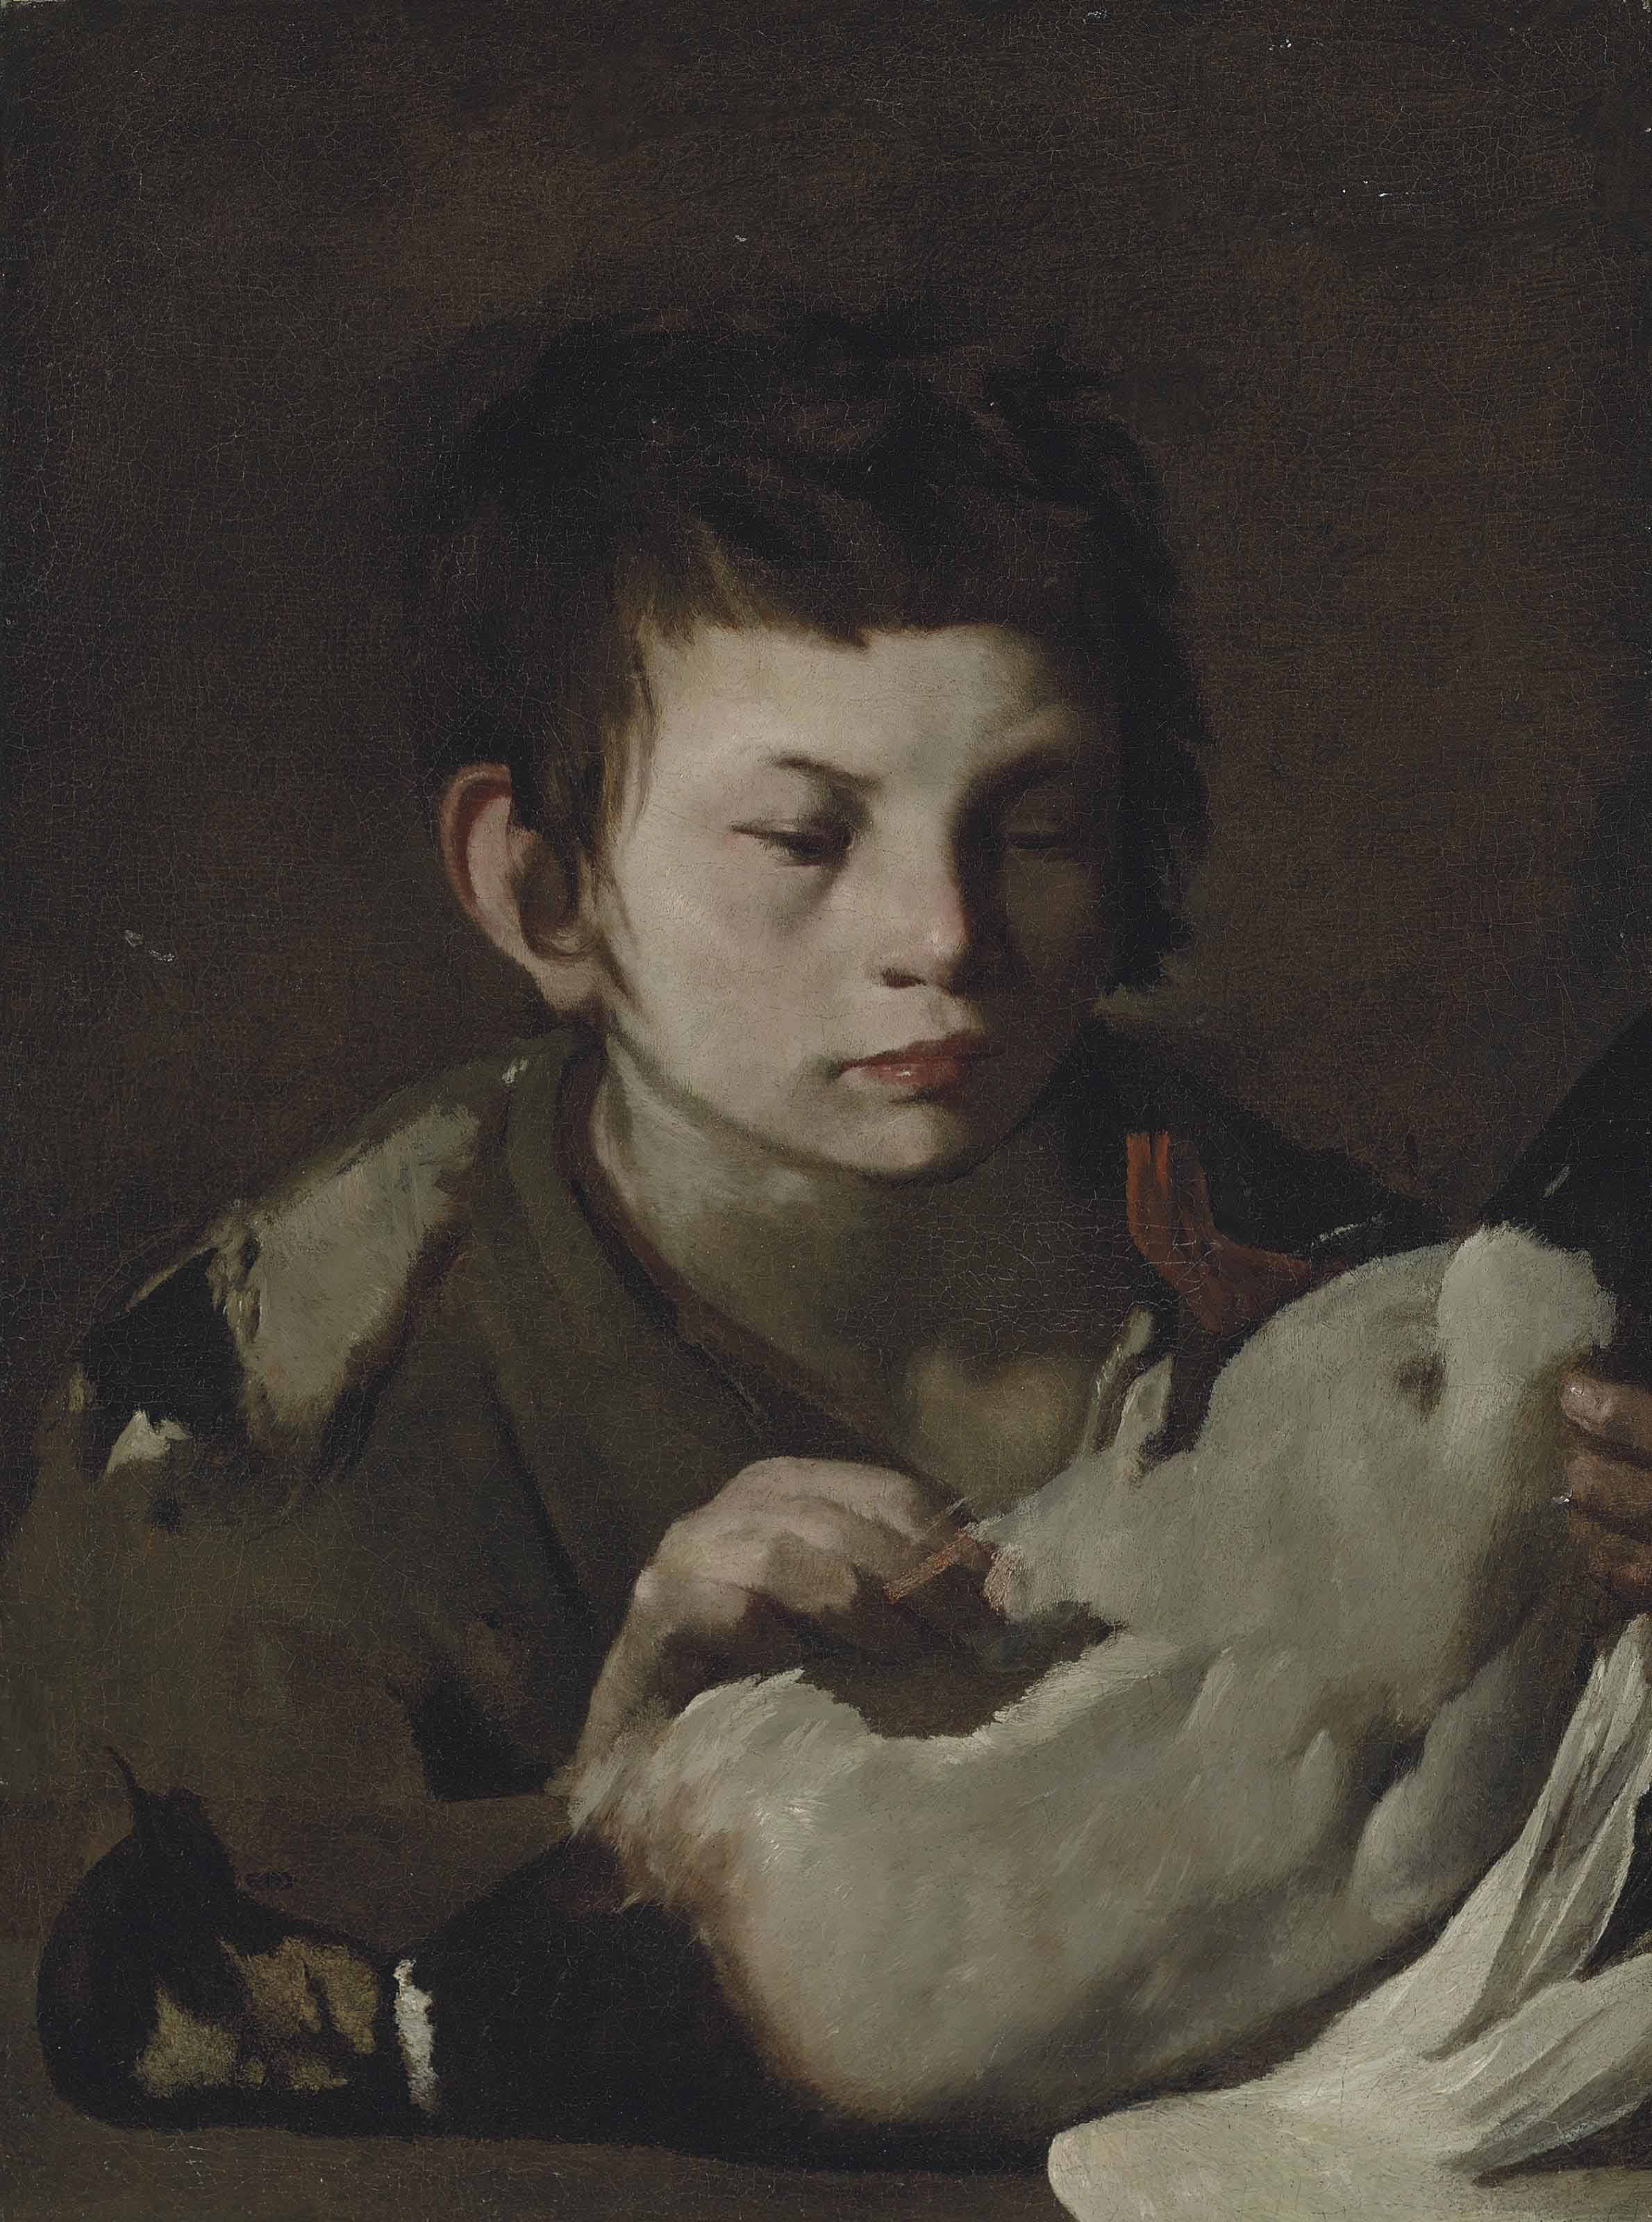 A young boy plucking a duck